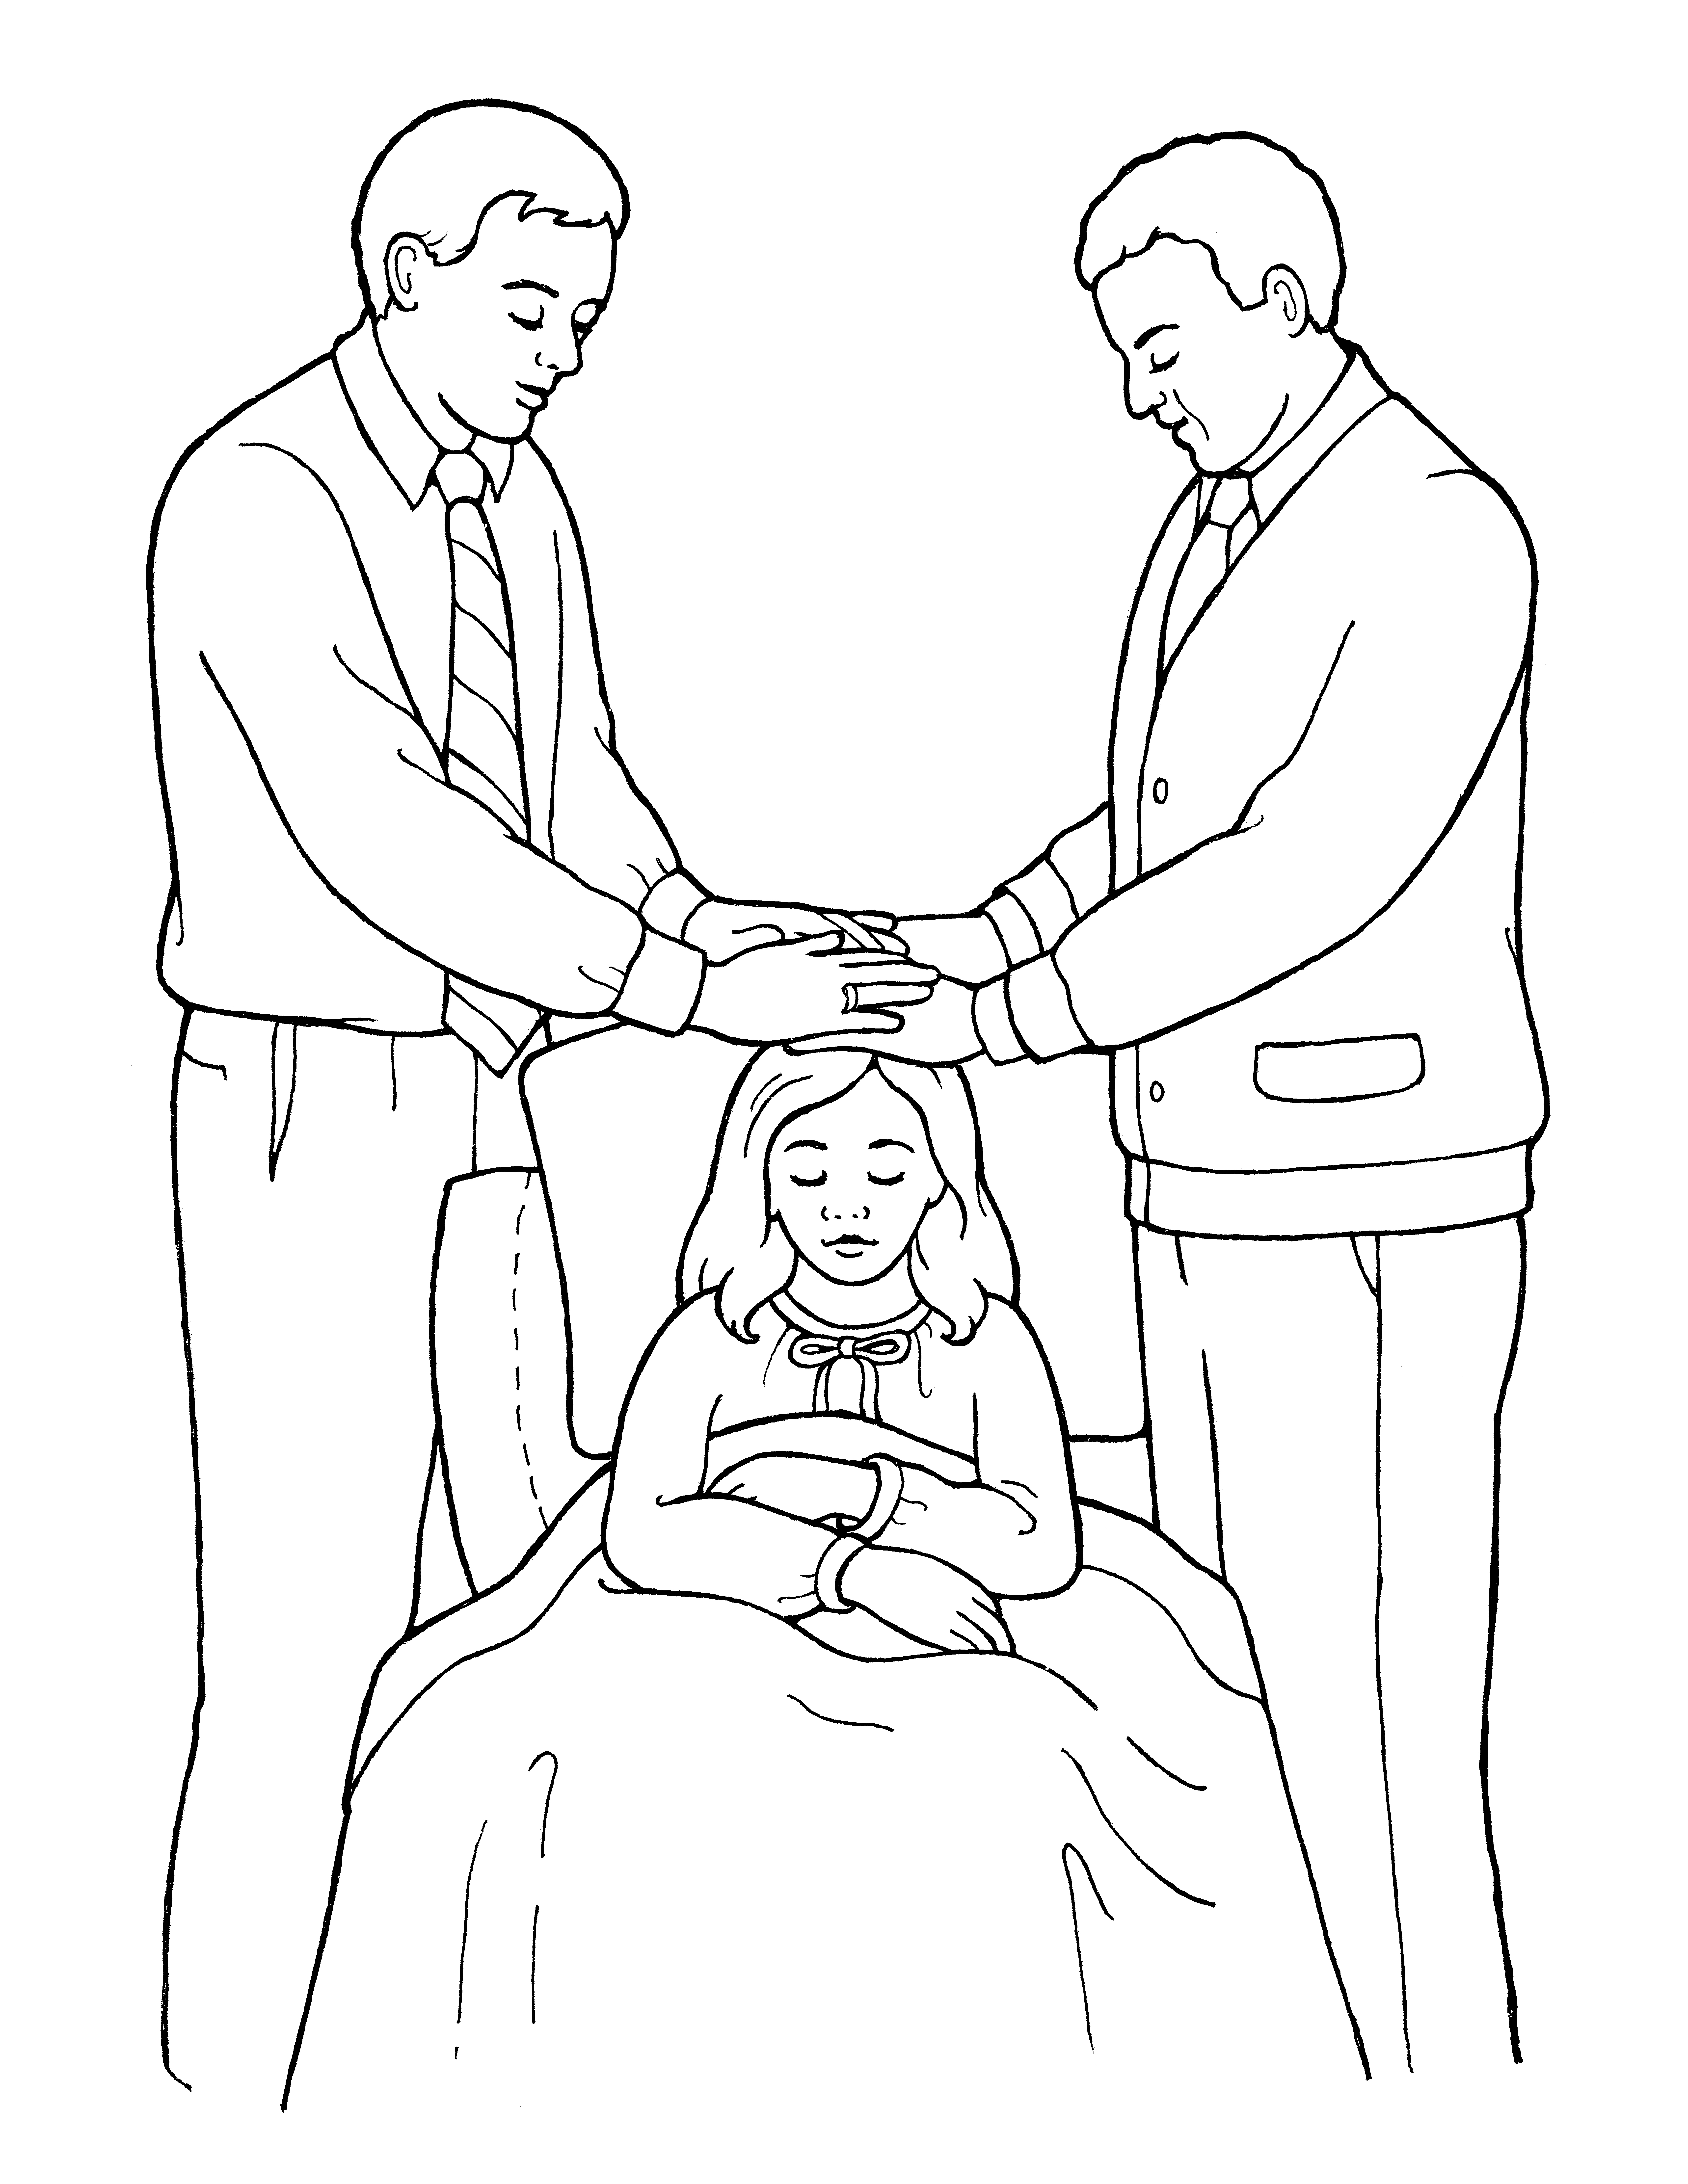 An illustration of two men blessing a sick girl, from the nursery manual Behold Your Little Ones (2008), page 119.